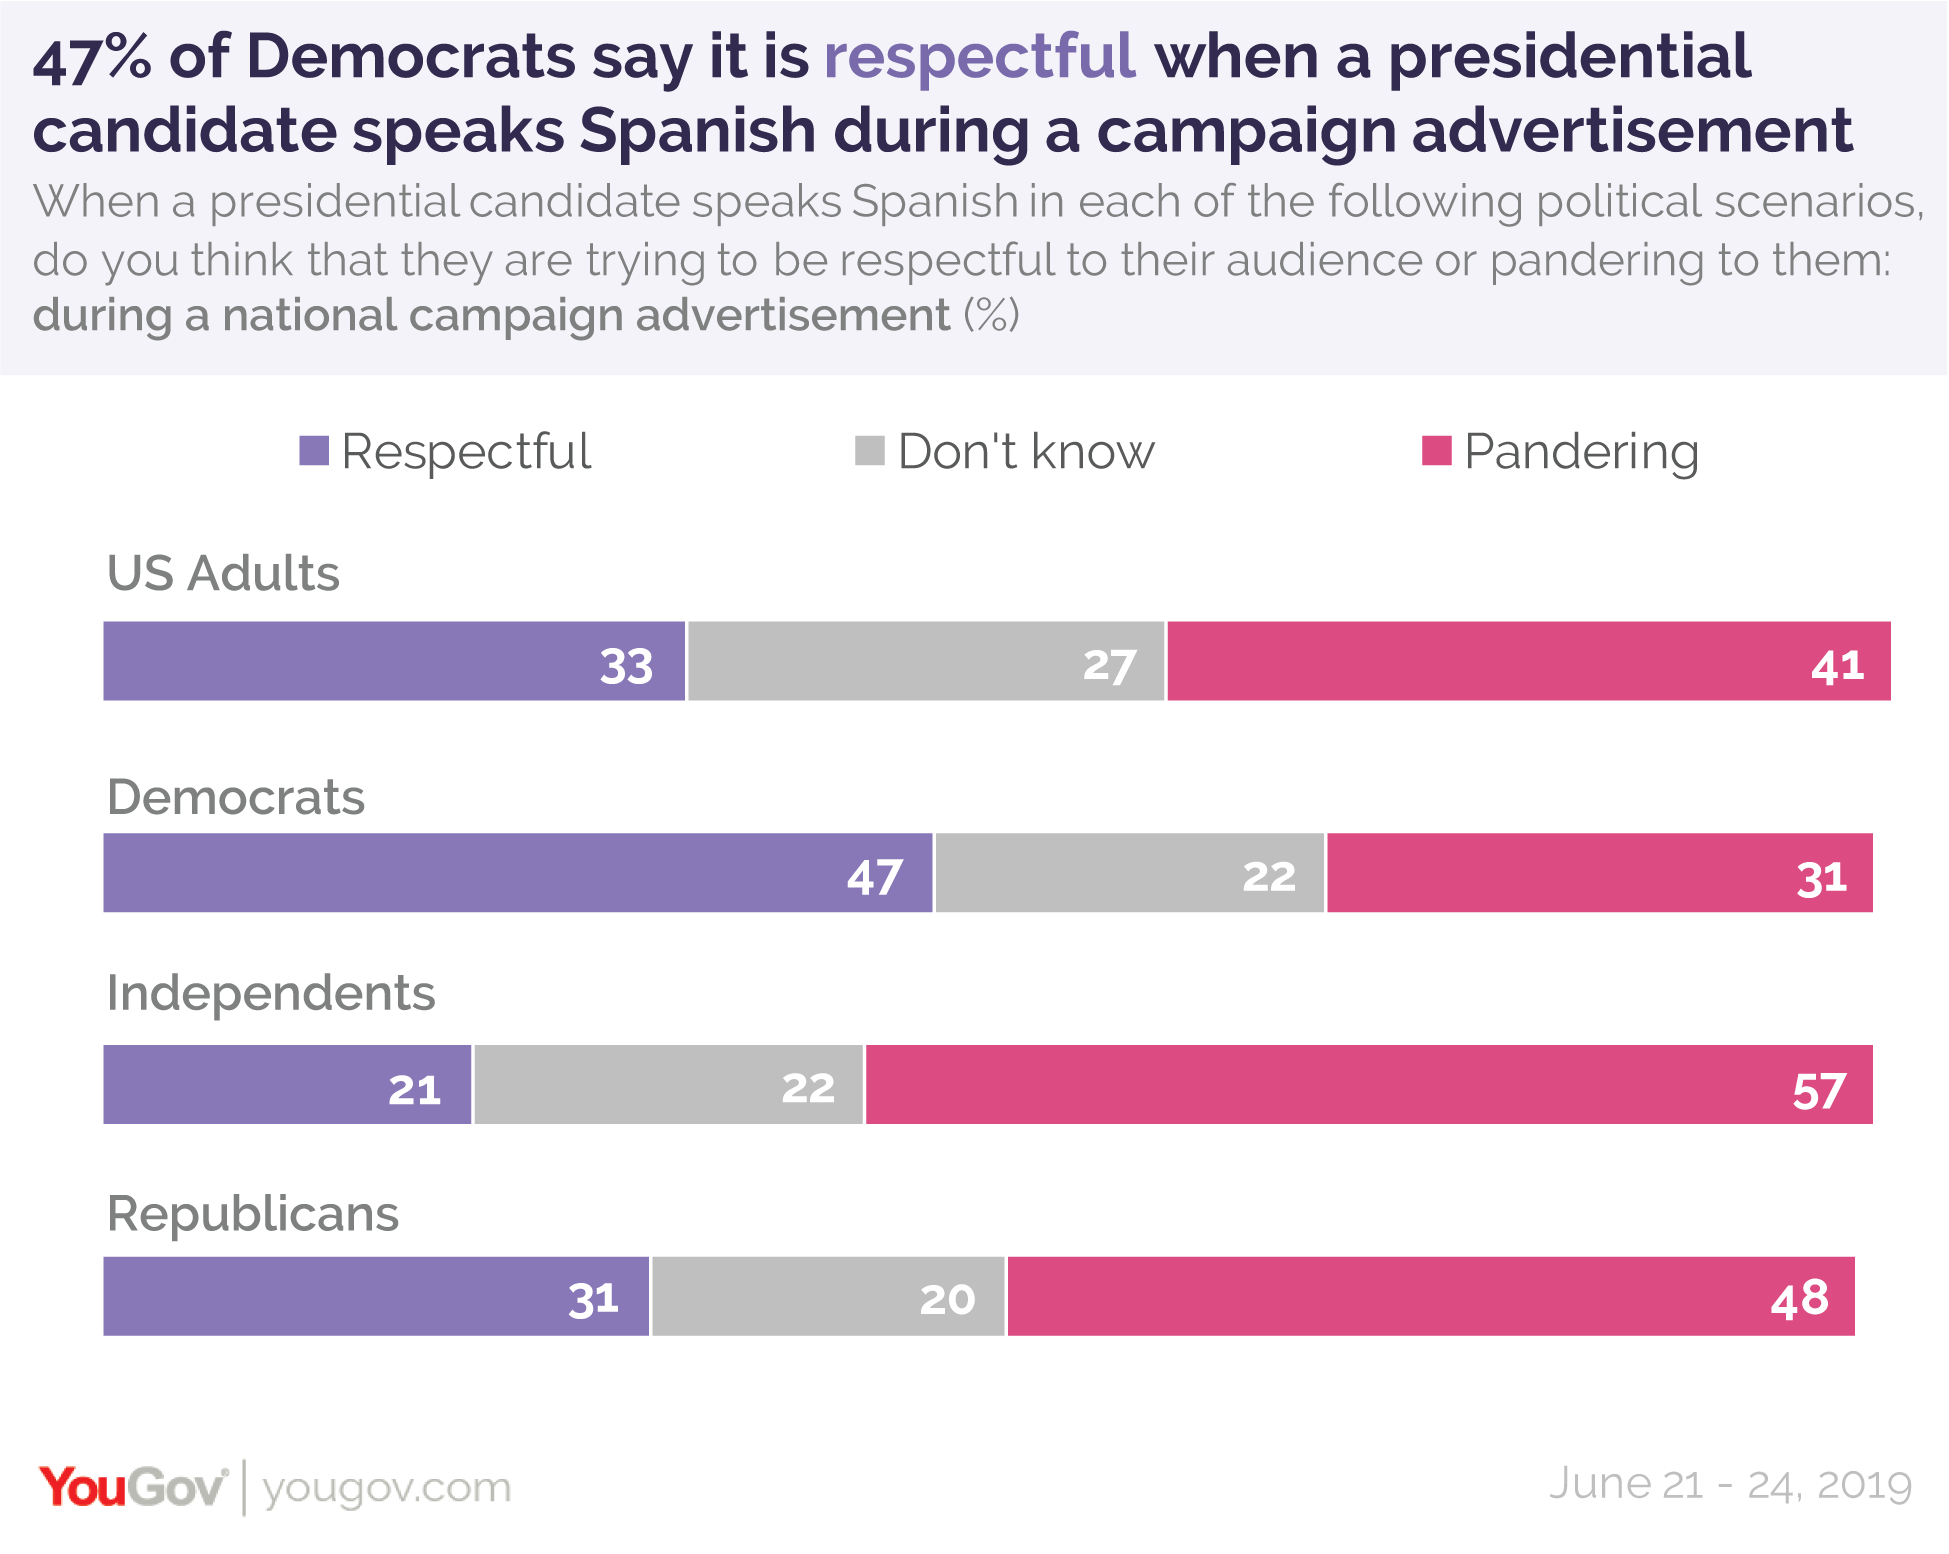 47% of Democrats say it is respectful when a presidential candidate speaks Spanish during a campaign advertisement